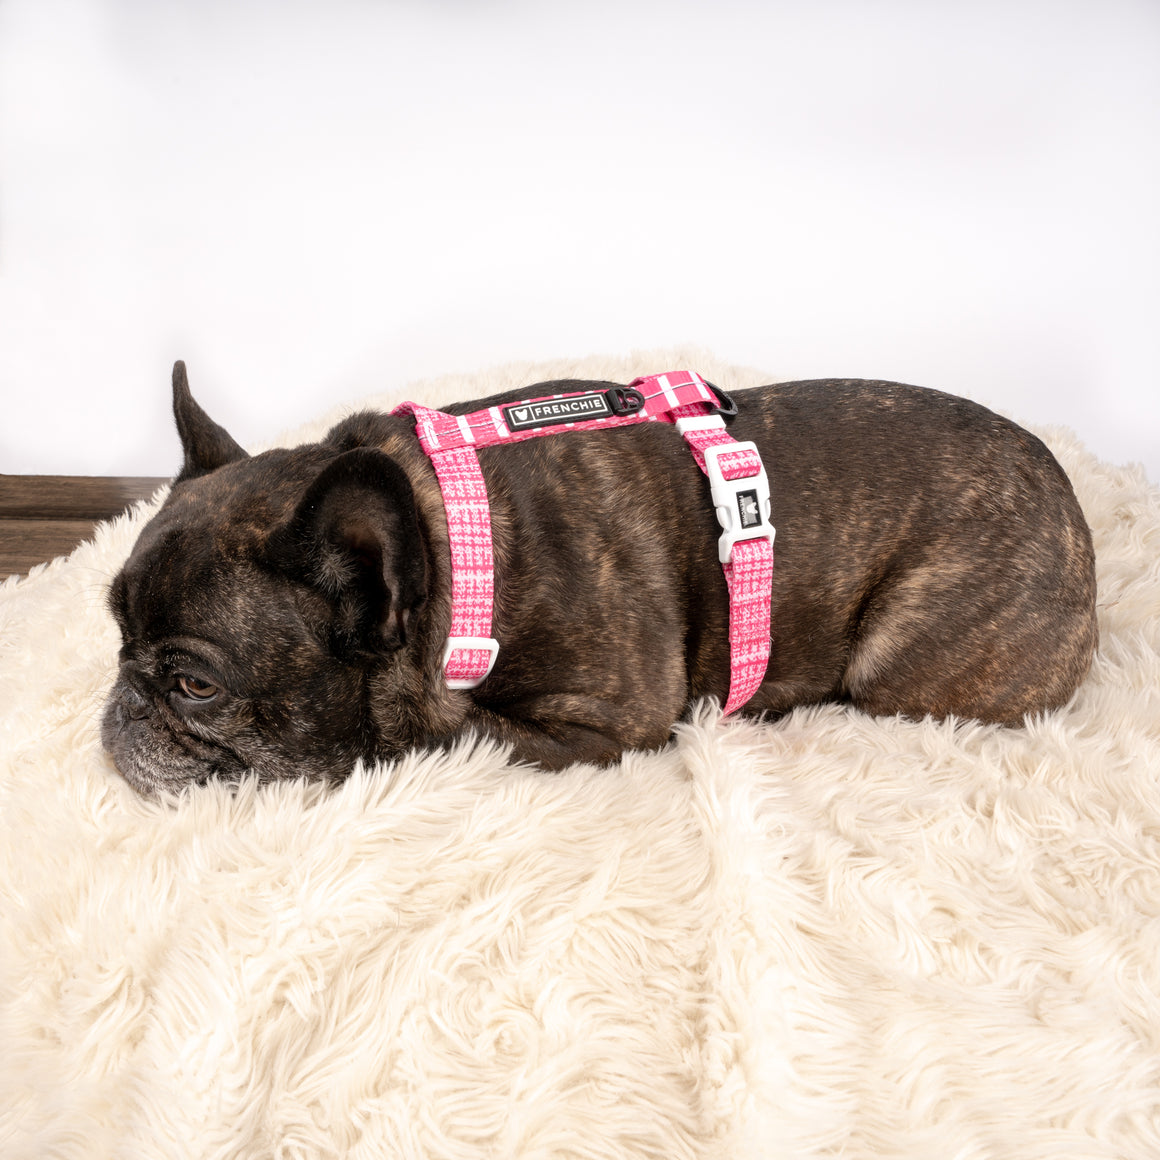 Frenchie Strap Harness - Pink Tweed - Frenchie Bulldog - Shop Harnesses for French Bulldogs - Shop French Bulldog Harness - Harnesses for Pugs